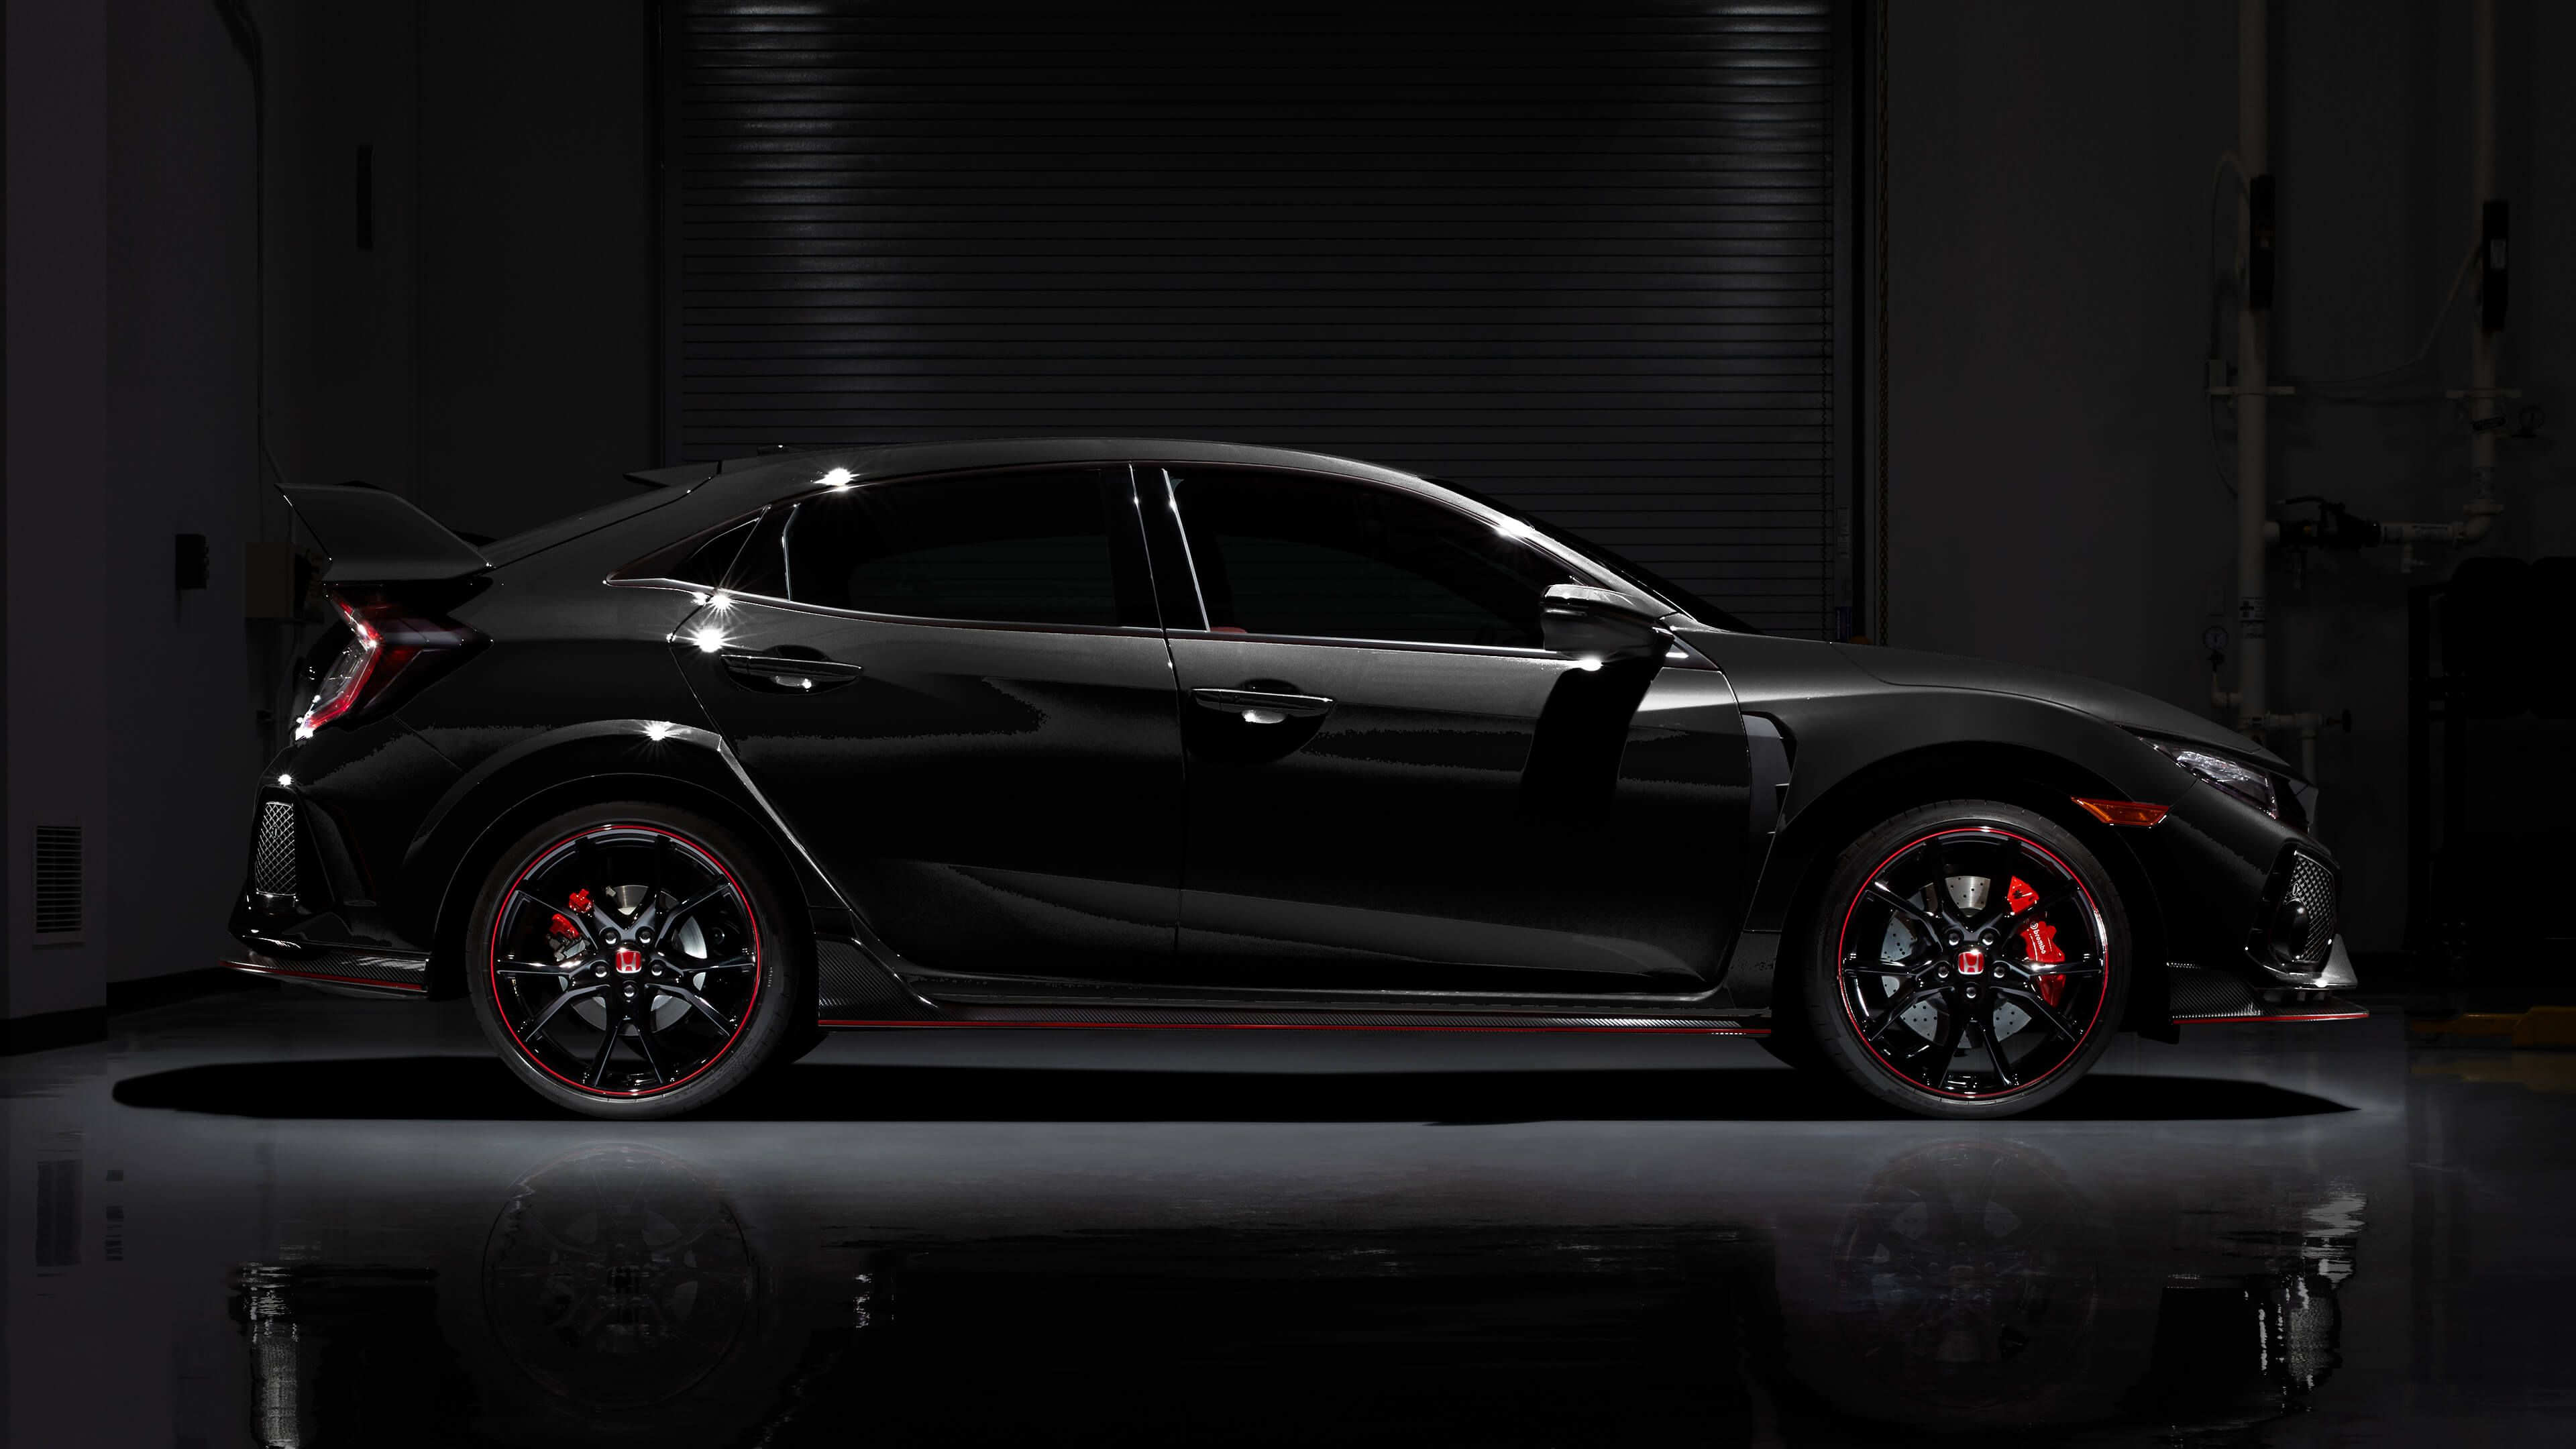 The Civic Type R is here